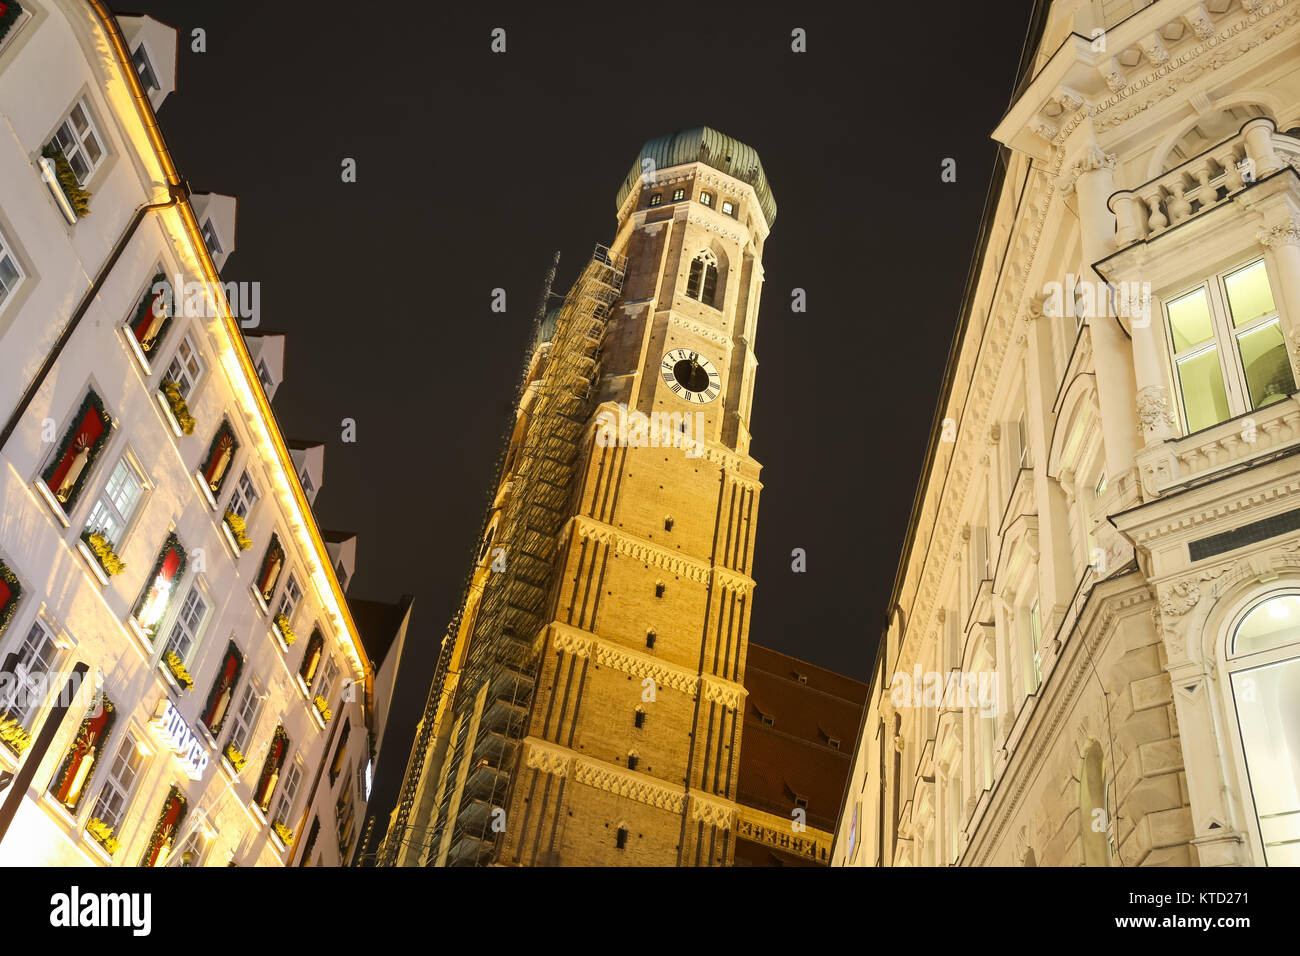 MUNICH, GERMANY - DECEMBER 11, 2017 : A view of the Cathedral of Our Lady at night in center of Munich, Germany. - Stock Image